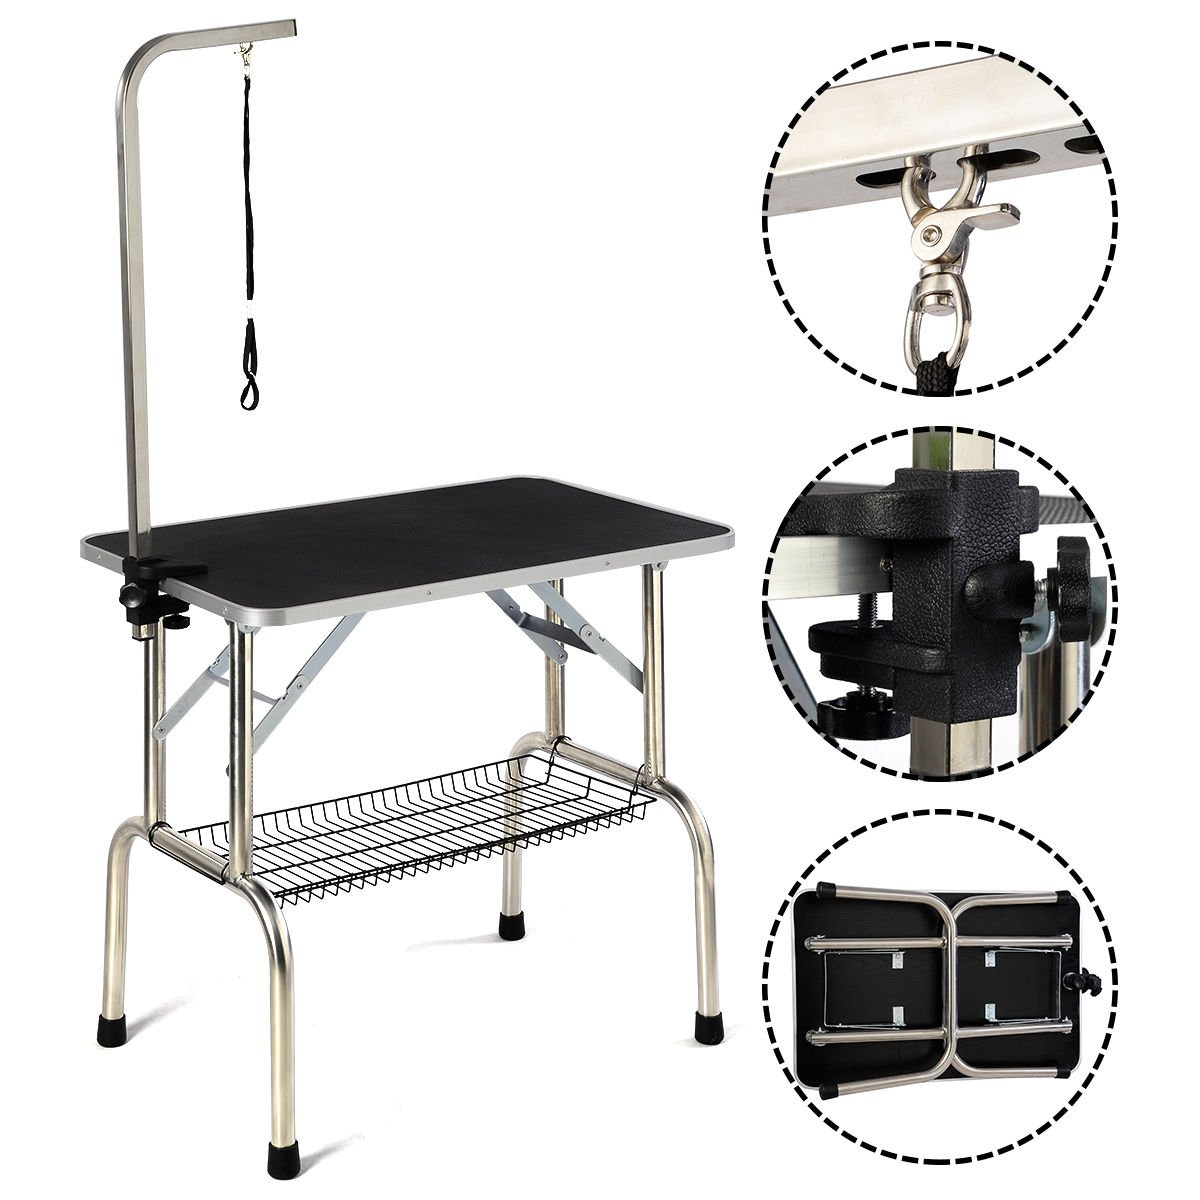 32'' Large Portable Pet Dog Cat Grooming Table Dog Show W/Arm &Noose & Mesh Tray by tamsun